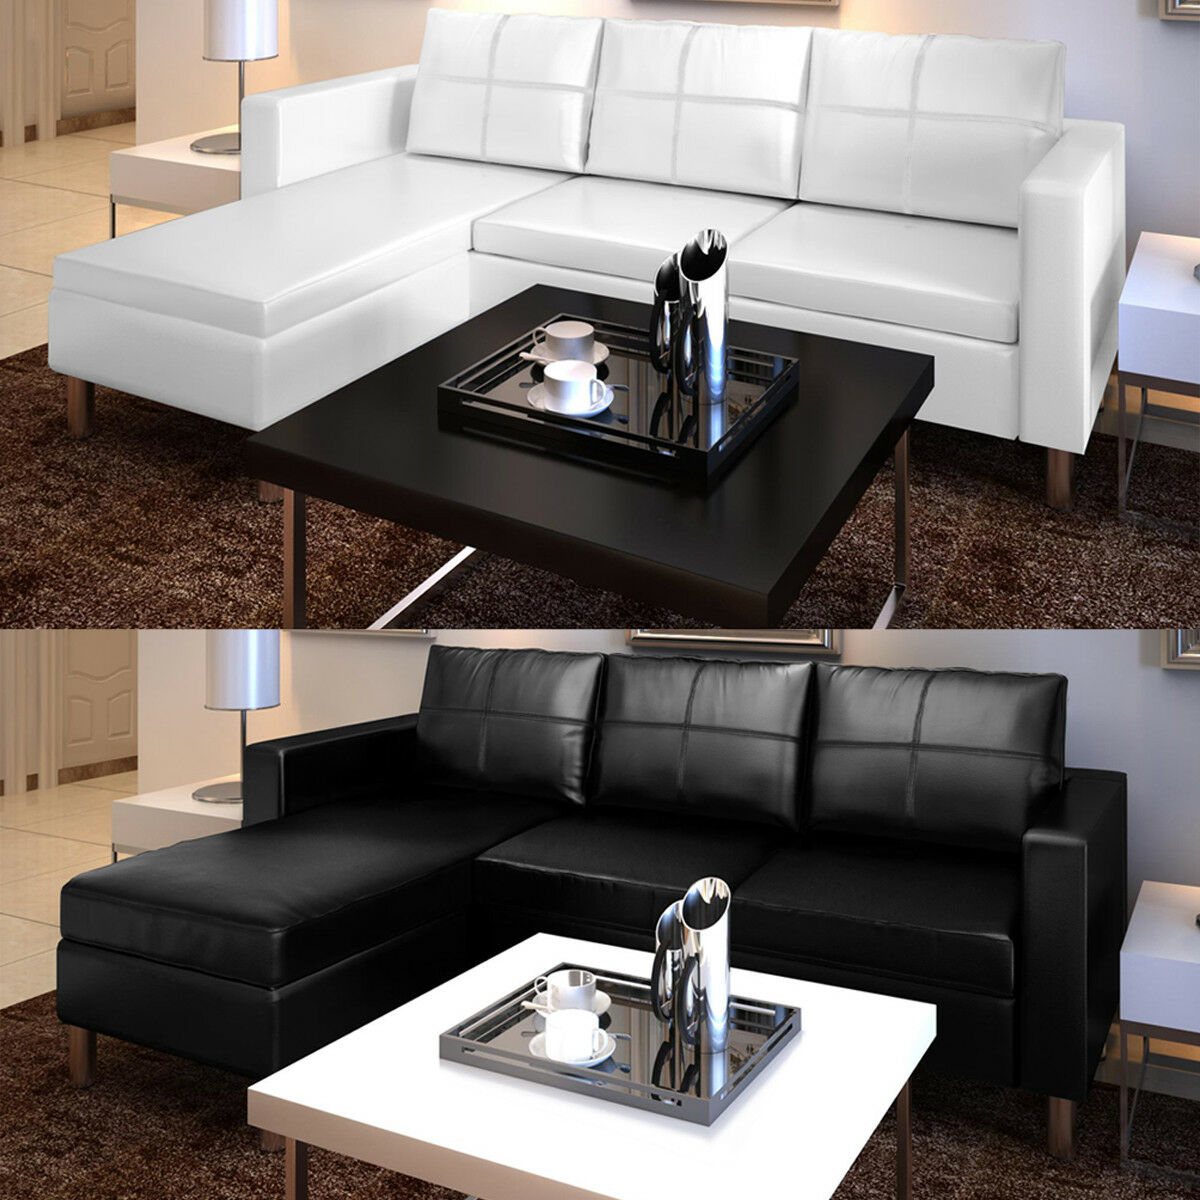 artificial leather sectional sofa configurable chaise lounge couch white black picclick. Black Bedroom Furniture Sets. Home Design Ideas